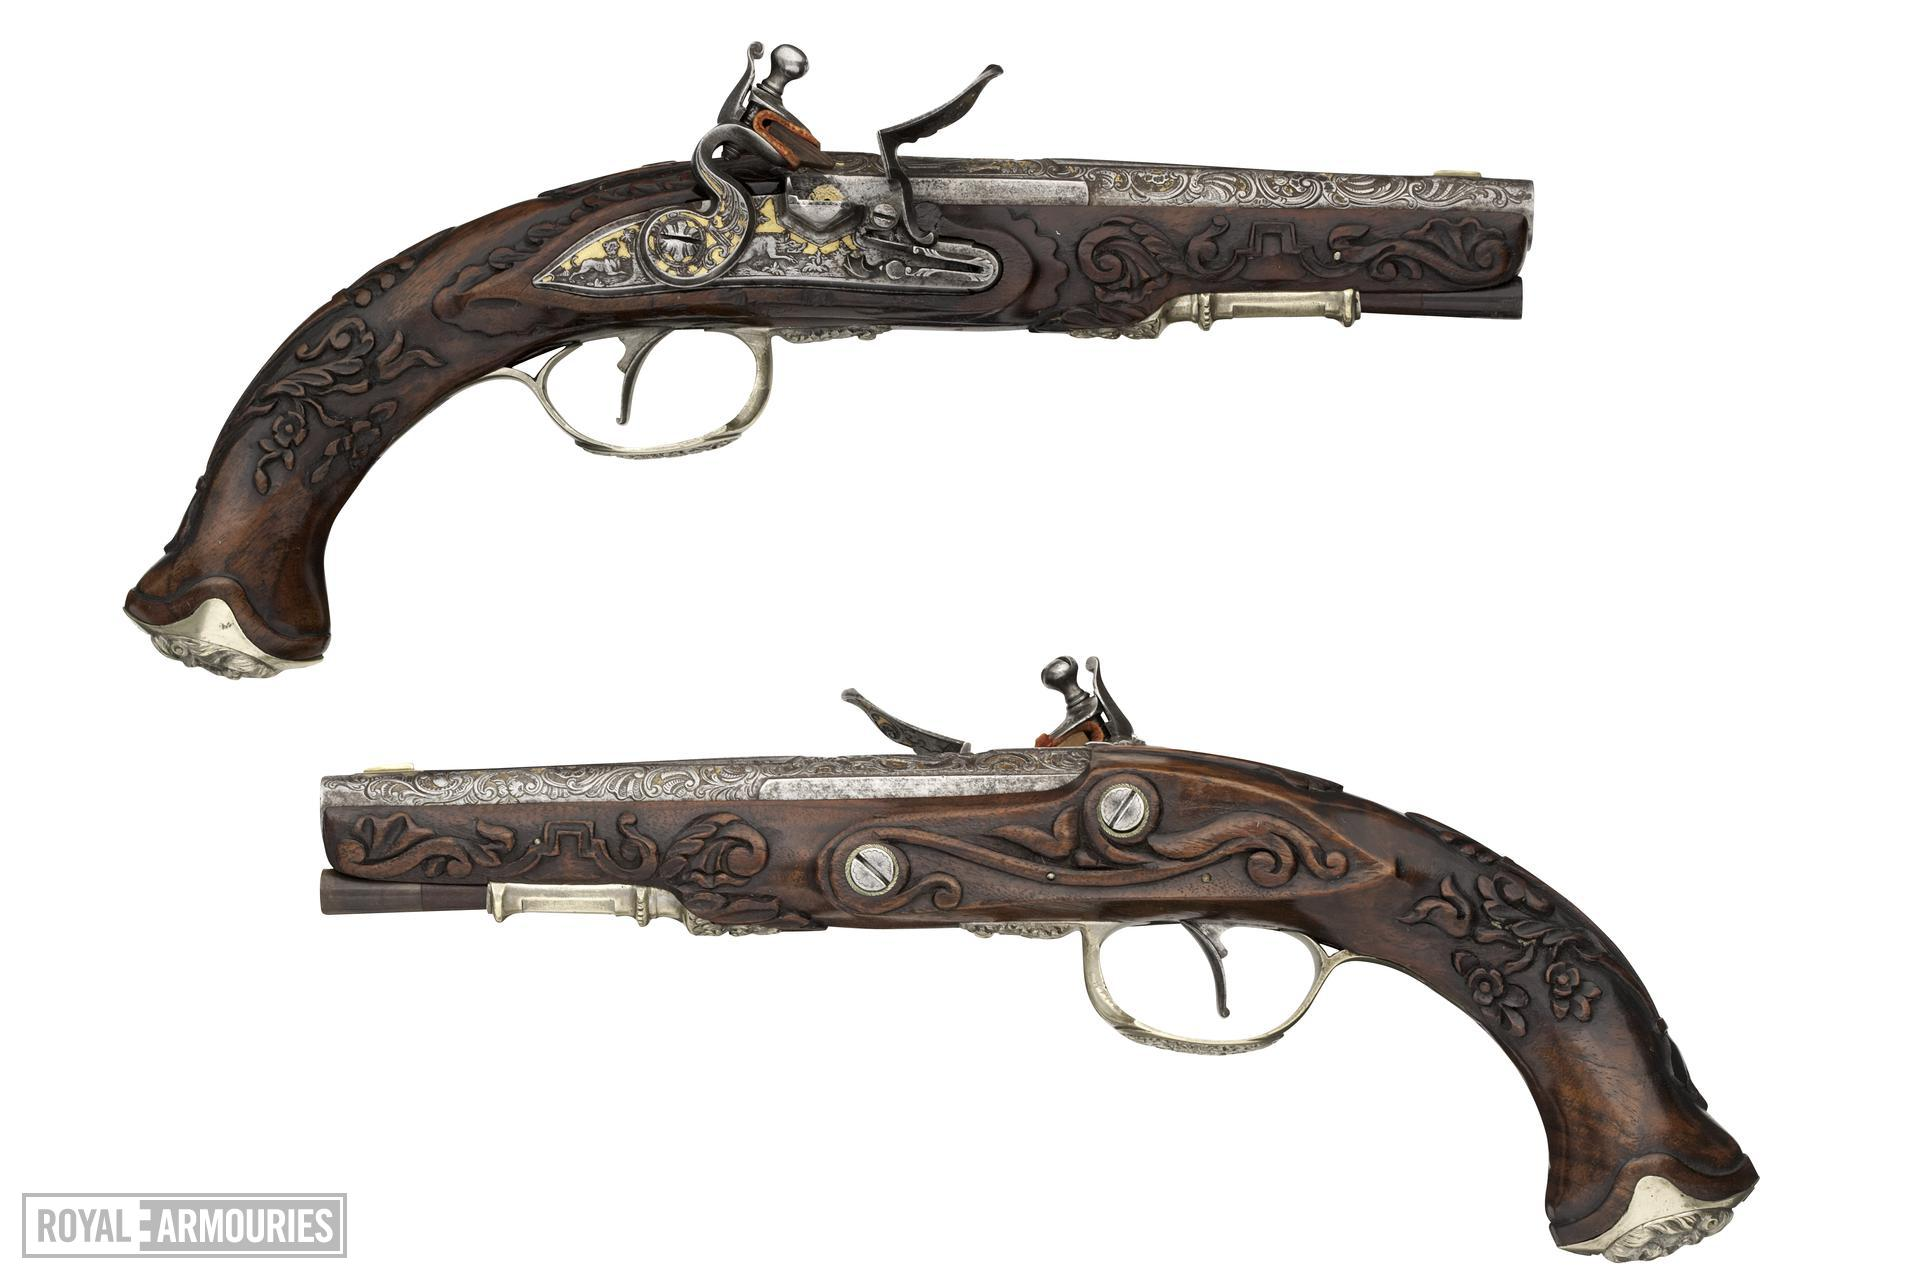 Flintlock pistol By Joh. Jac. Kuchenruter One of a pair; see XII.1309 Stocks and mounts about 1810-1820.